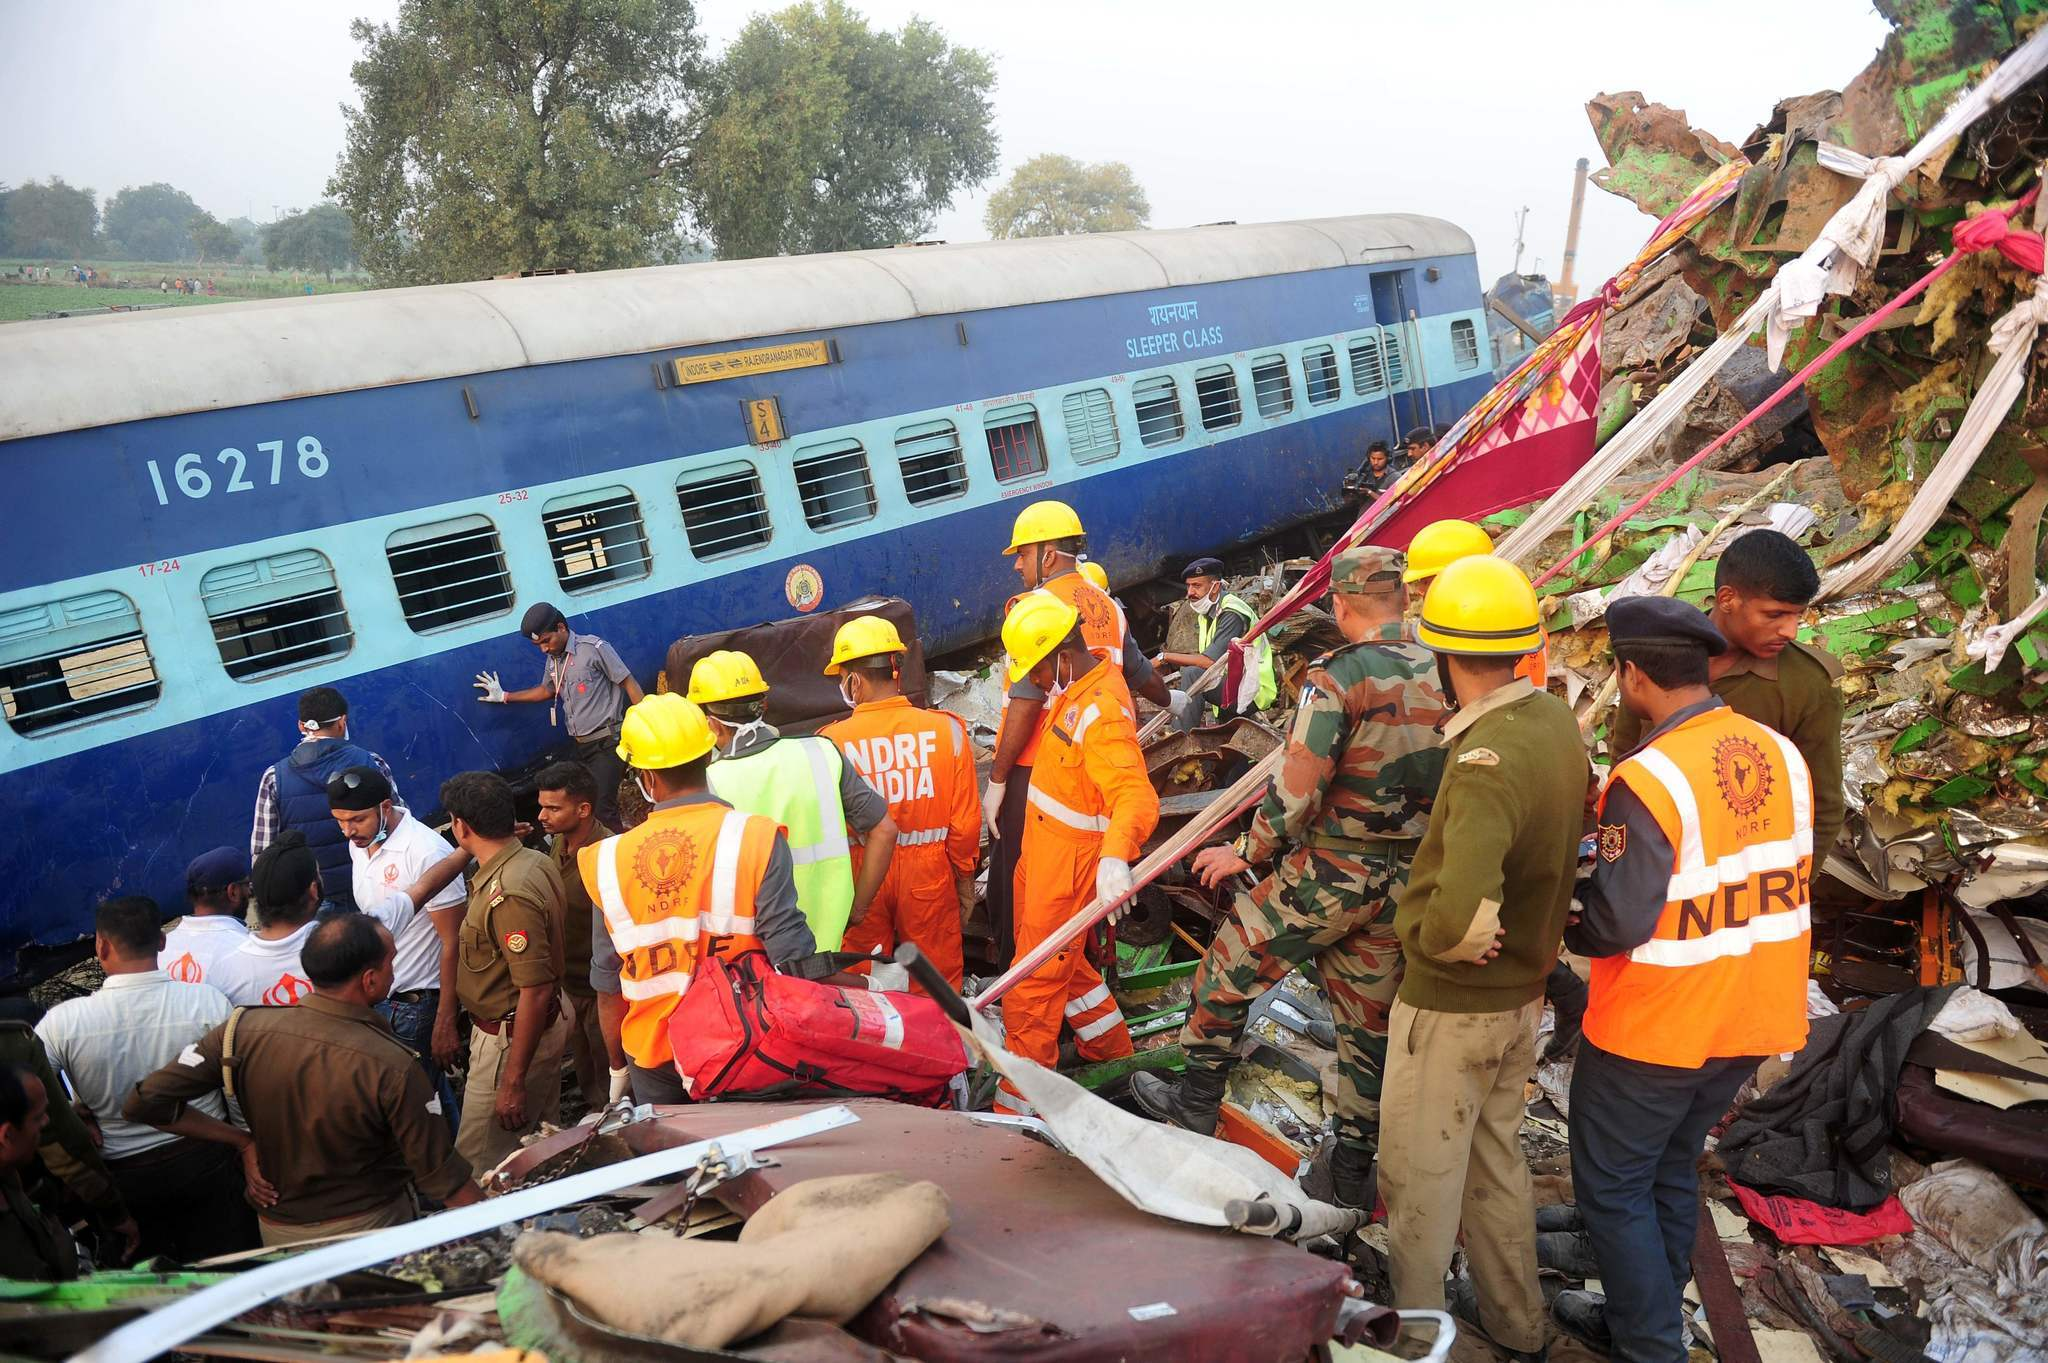 Rescuers finish search of Indian train wreck, at least 133 ...  Indian Railway Accidents